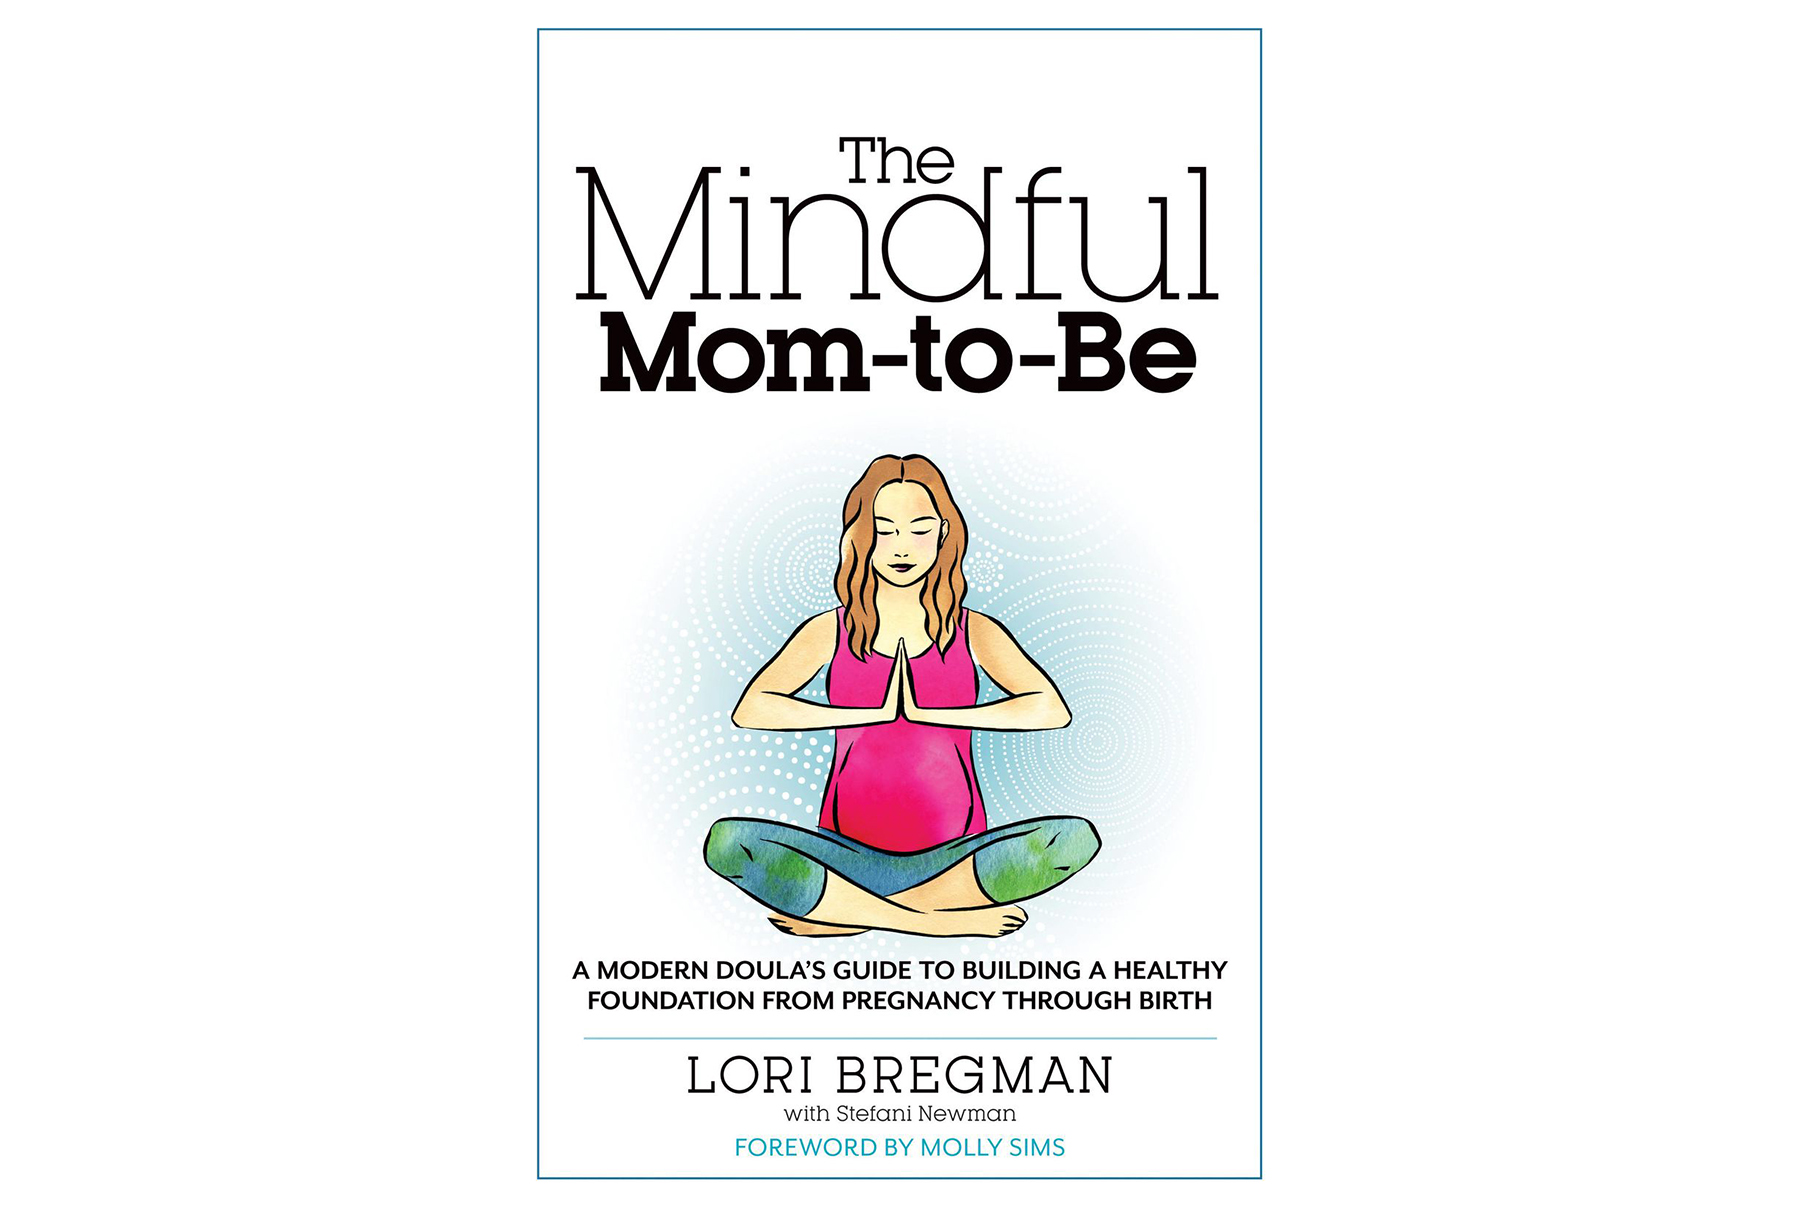 Kristen Bell: The Mindful Mom-to-Be, Lori Bregman